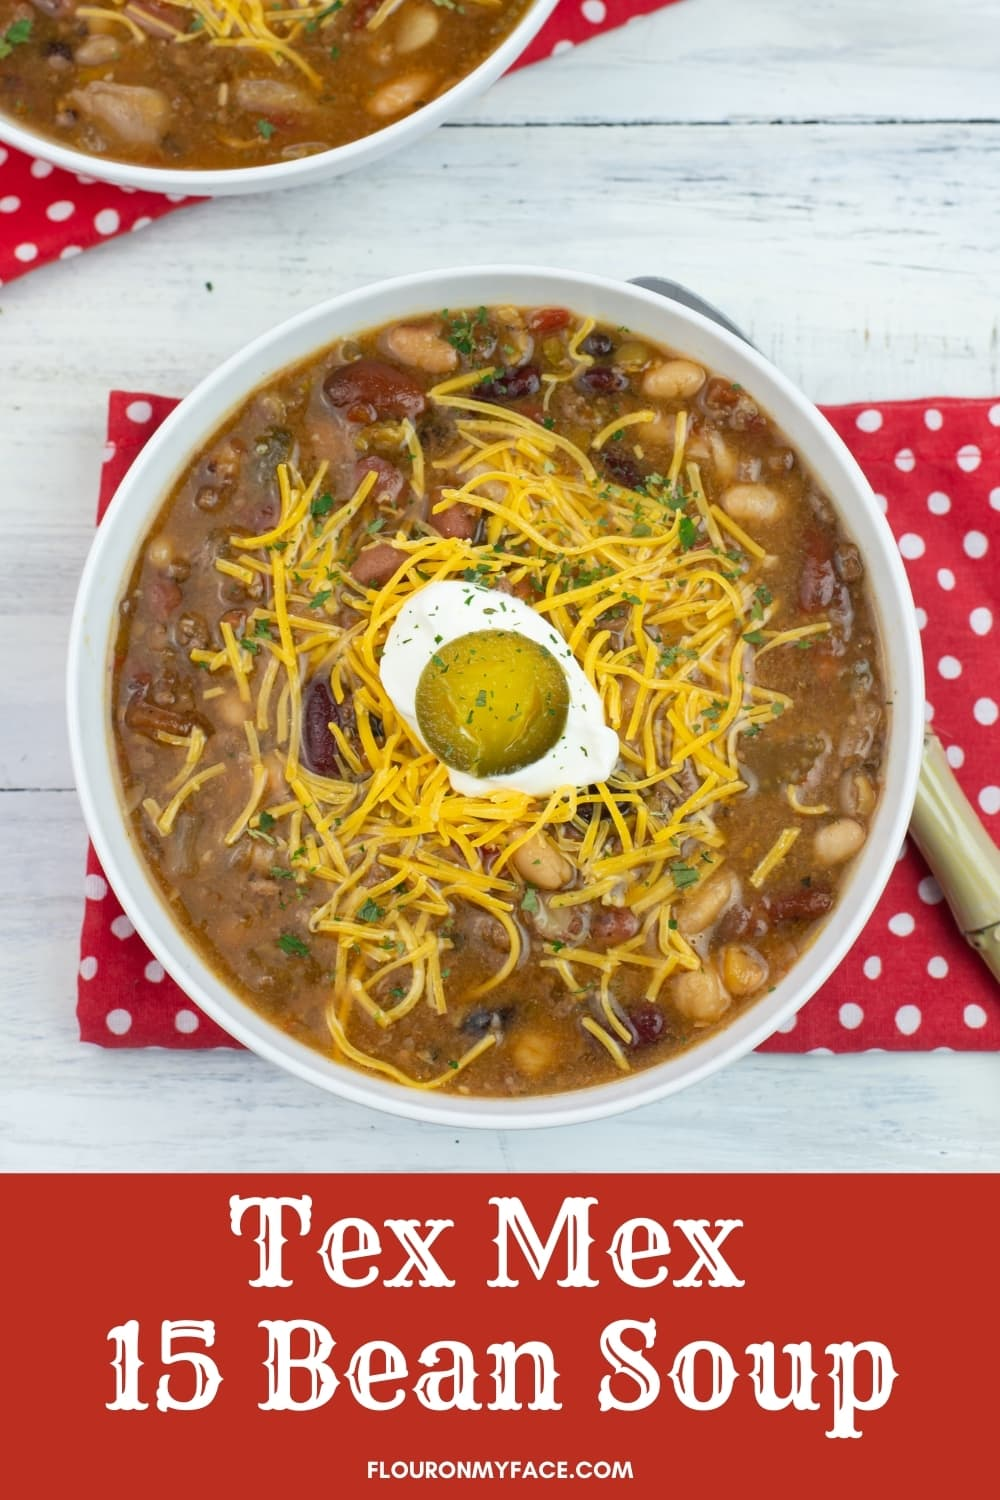 Crock Pot Tex Mex Soup vertical image with text overlay